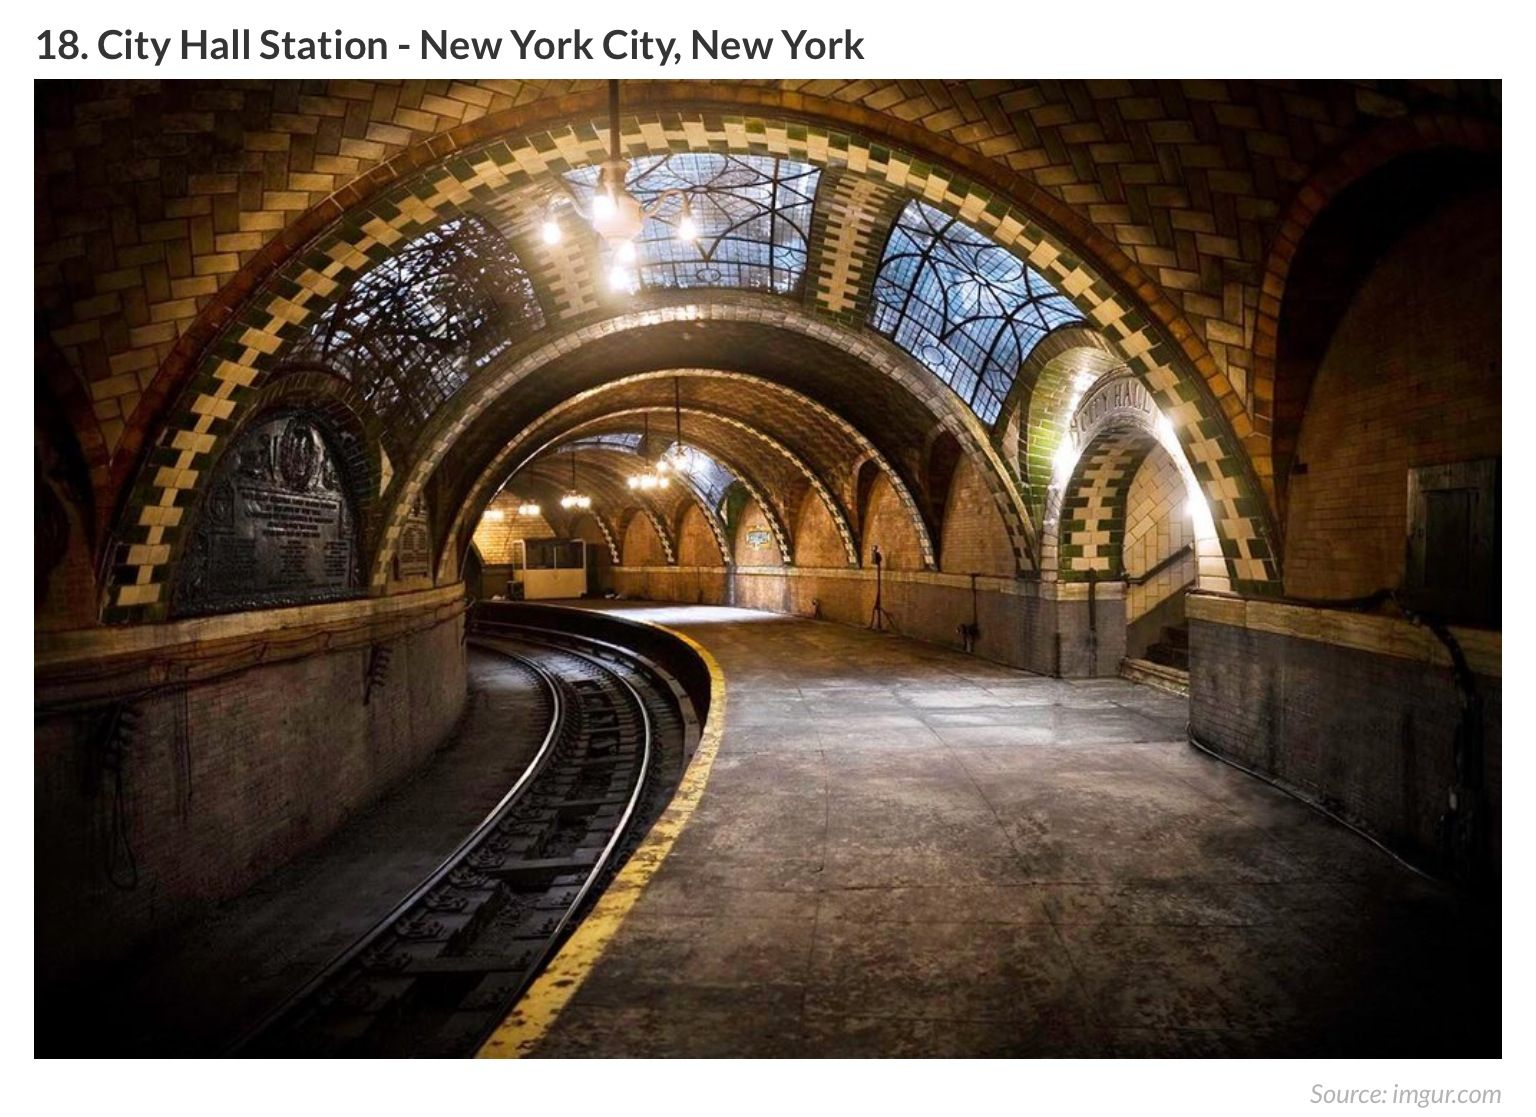 OMG ITS THE TRAIN STATION IN FANTASTIC BEASTS AND WHERE TO FIND THEM ...